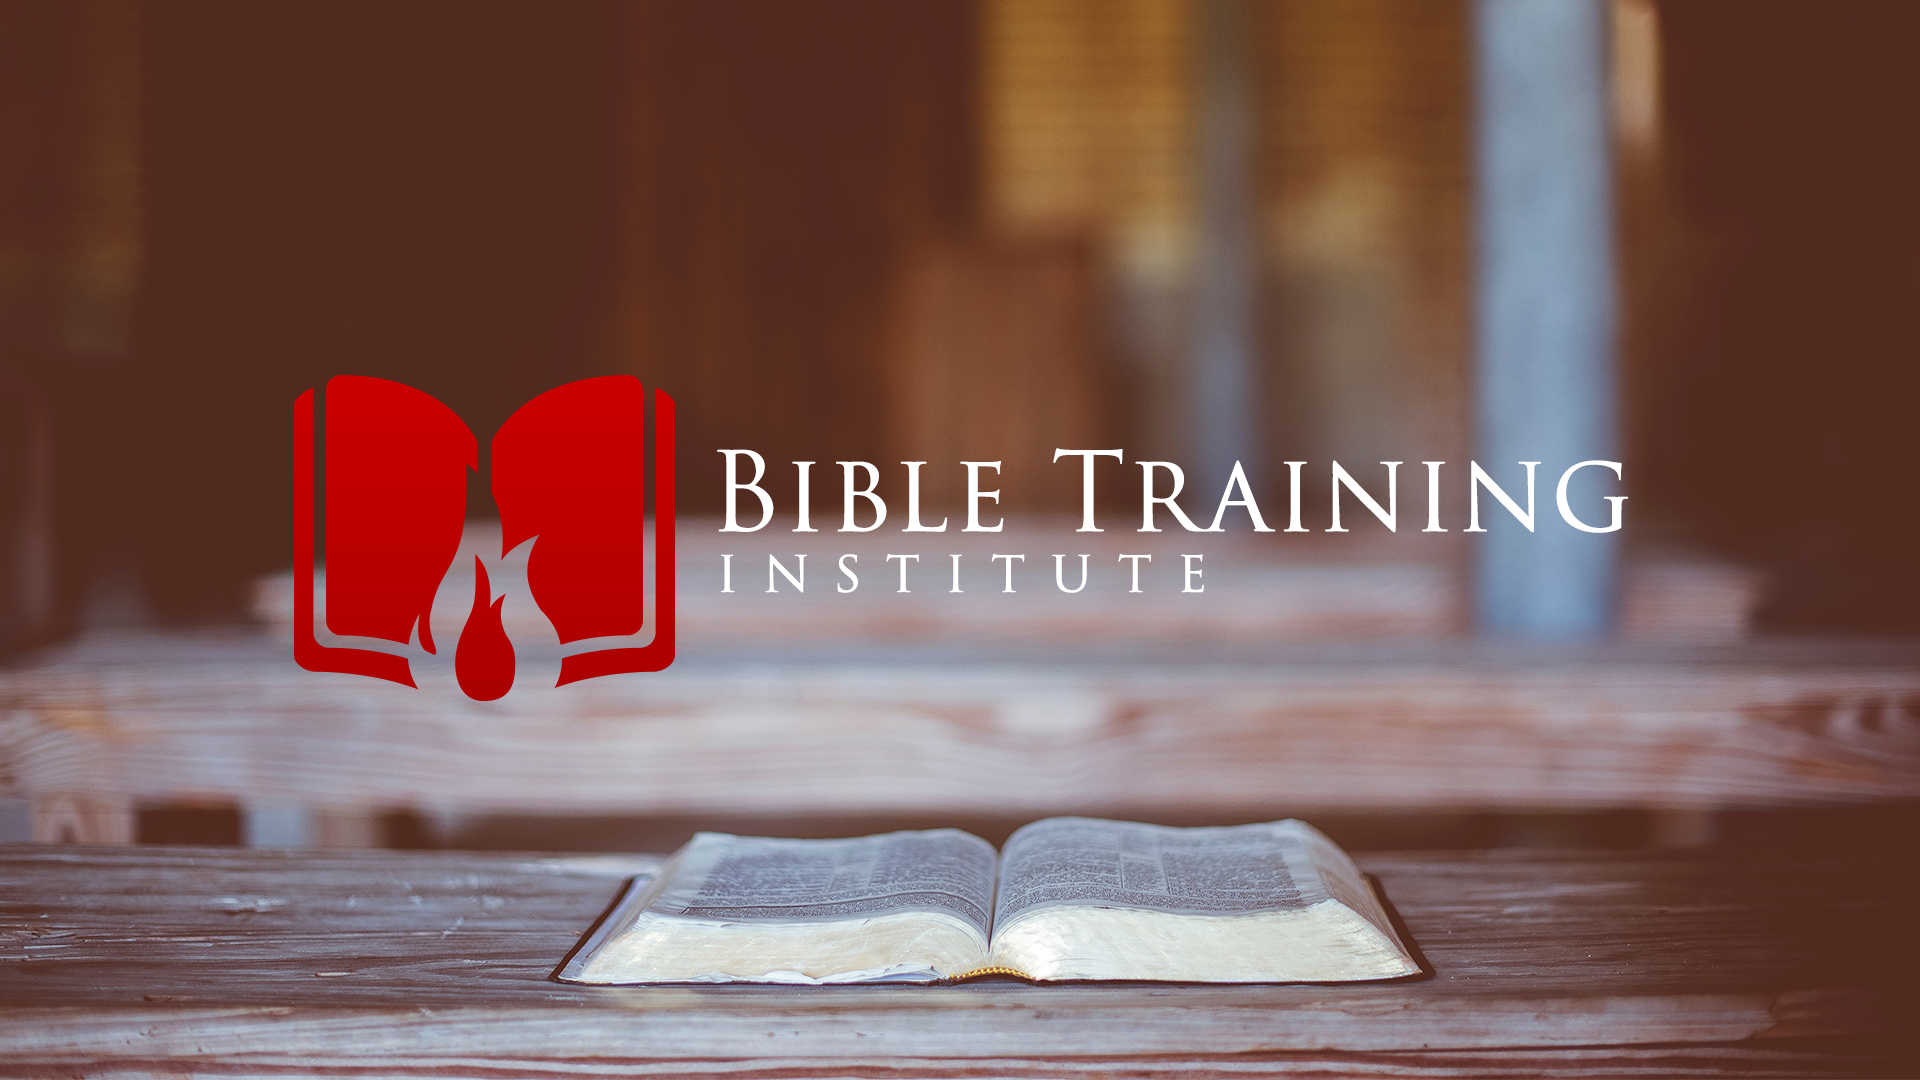 Bible Training Institute Videos